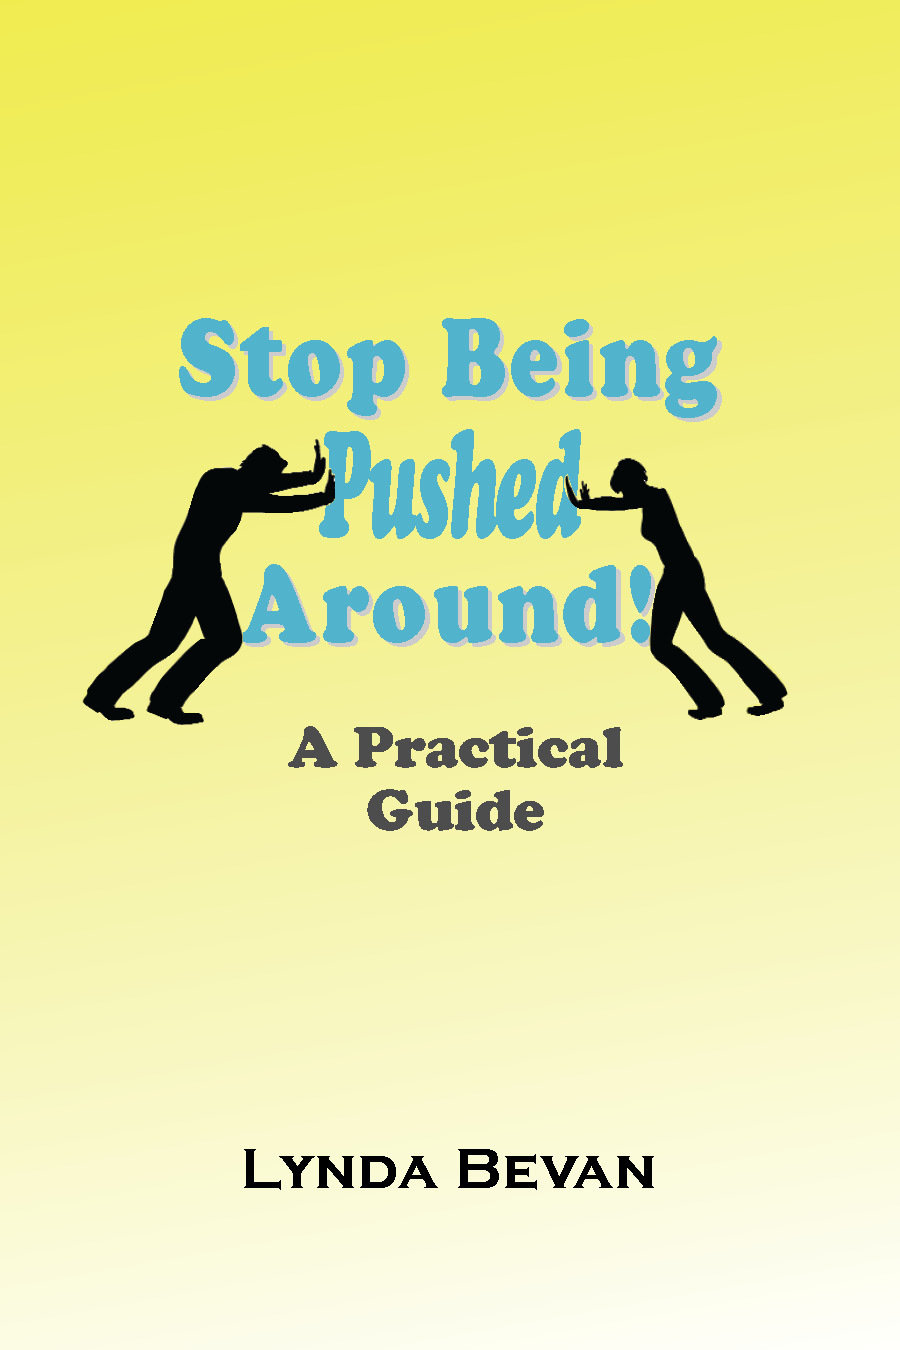 Stop Being Pushed Around: A Practical Guide 978-1-932690-45-3